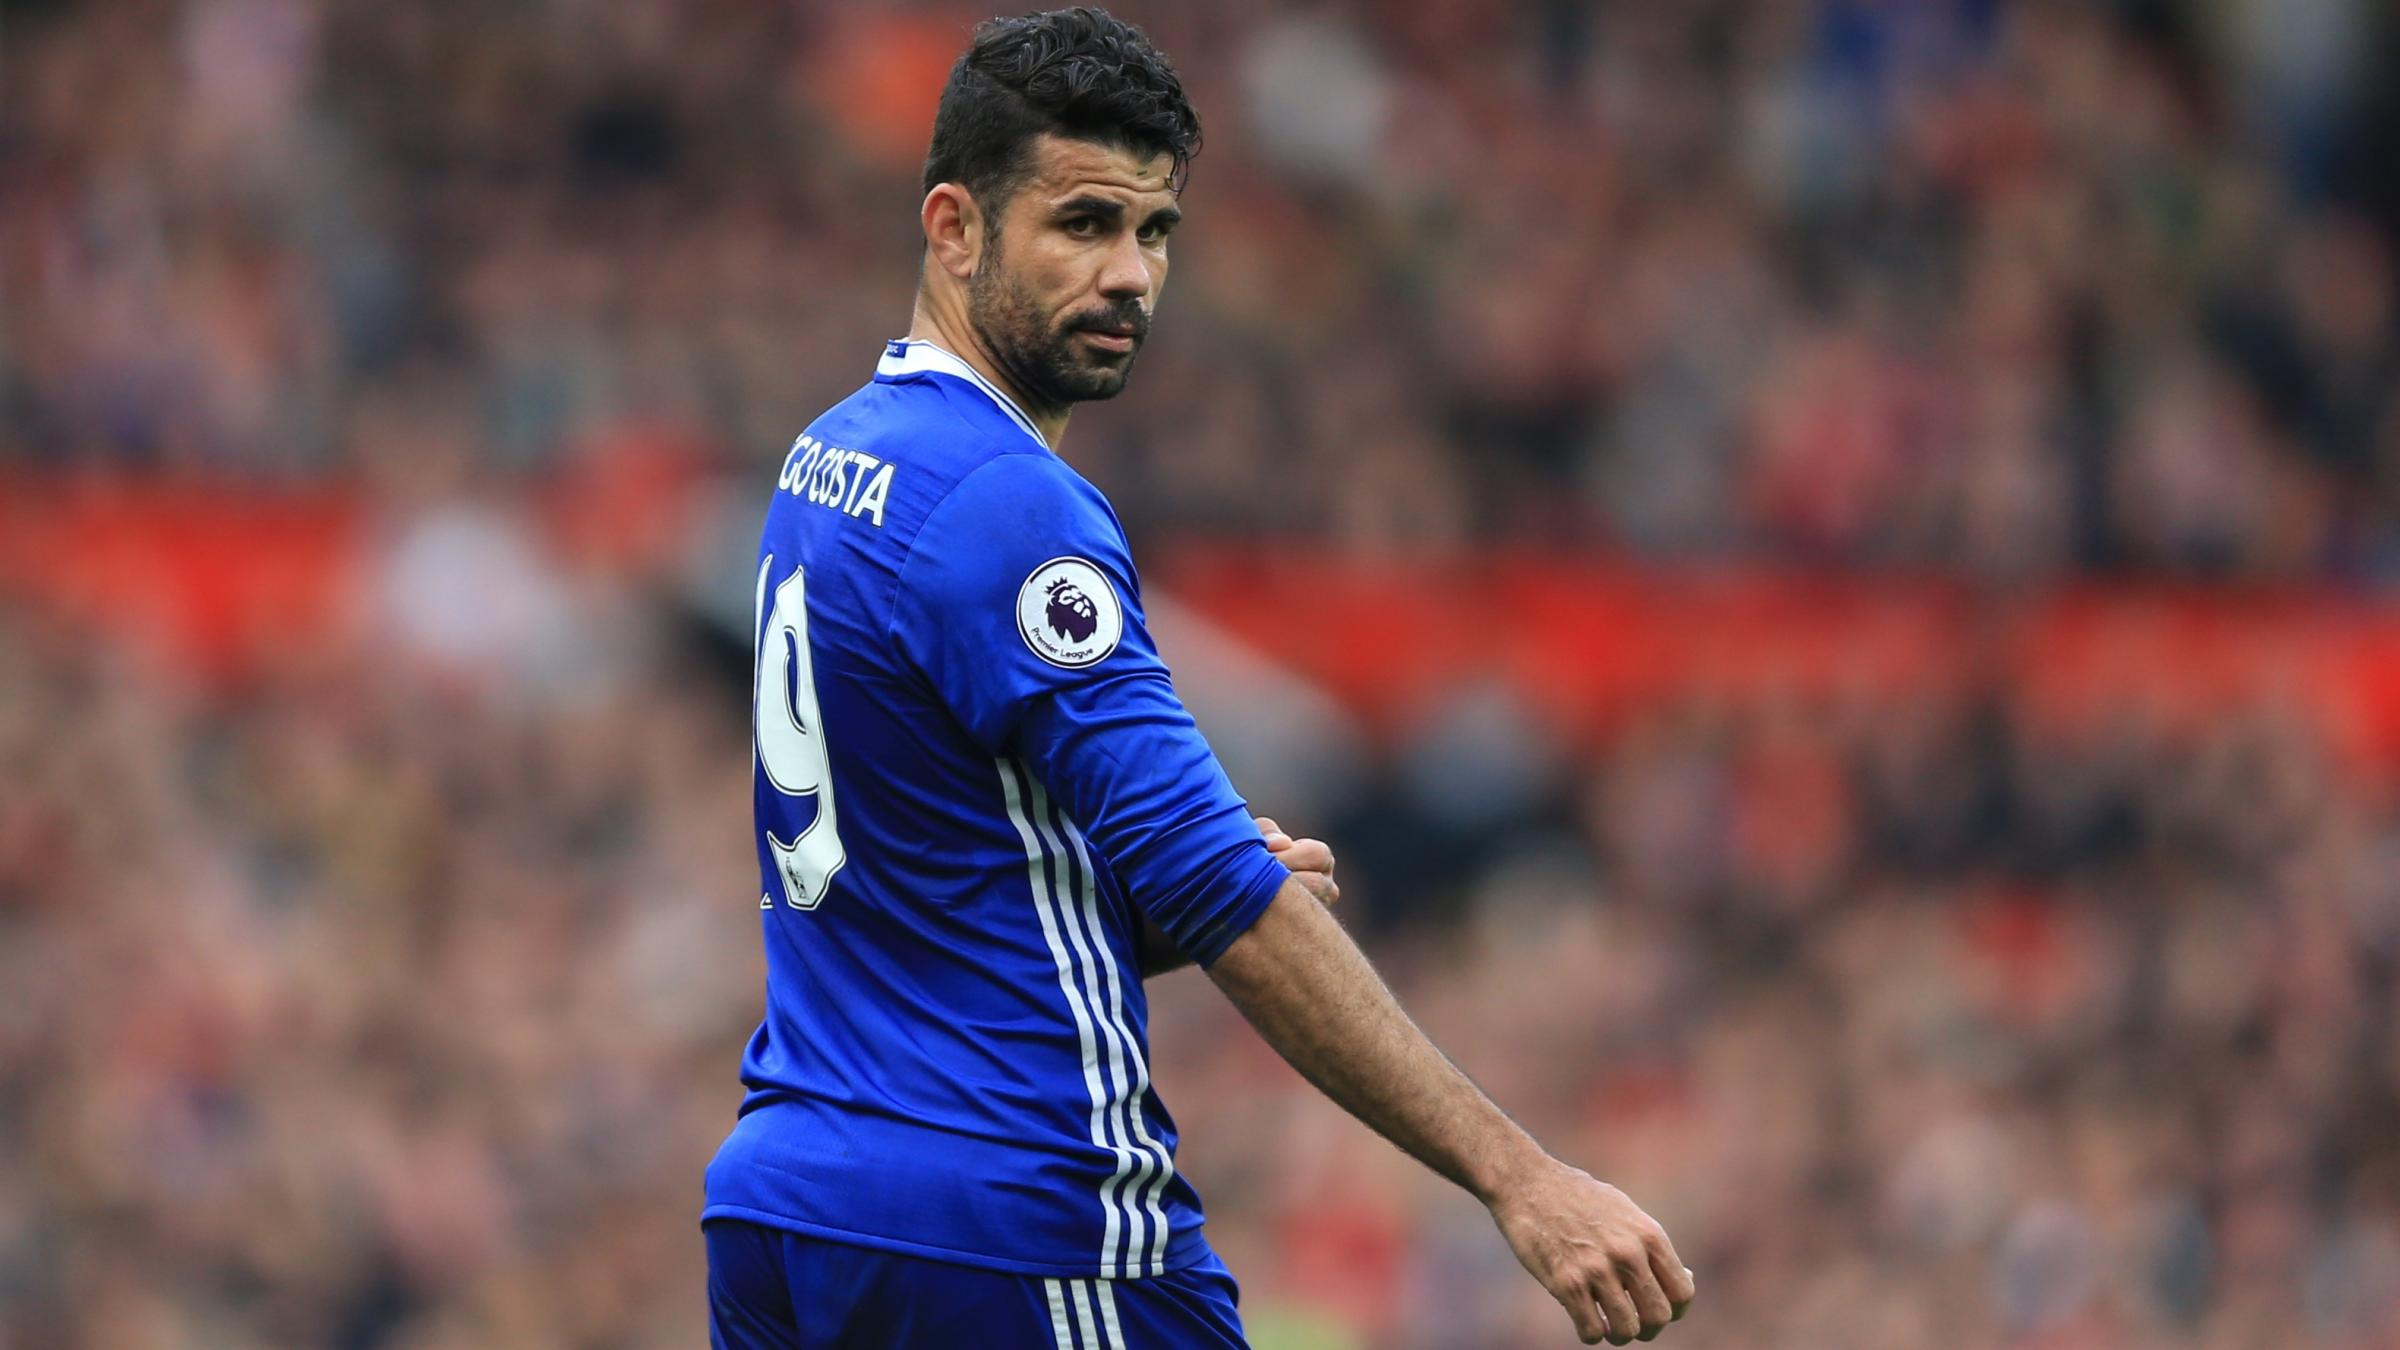 Chelsea star Costa open to Atletico Madrid return but rules out China